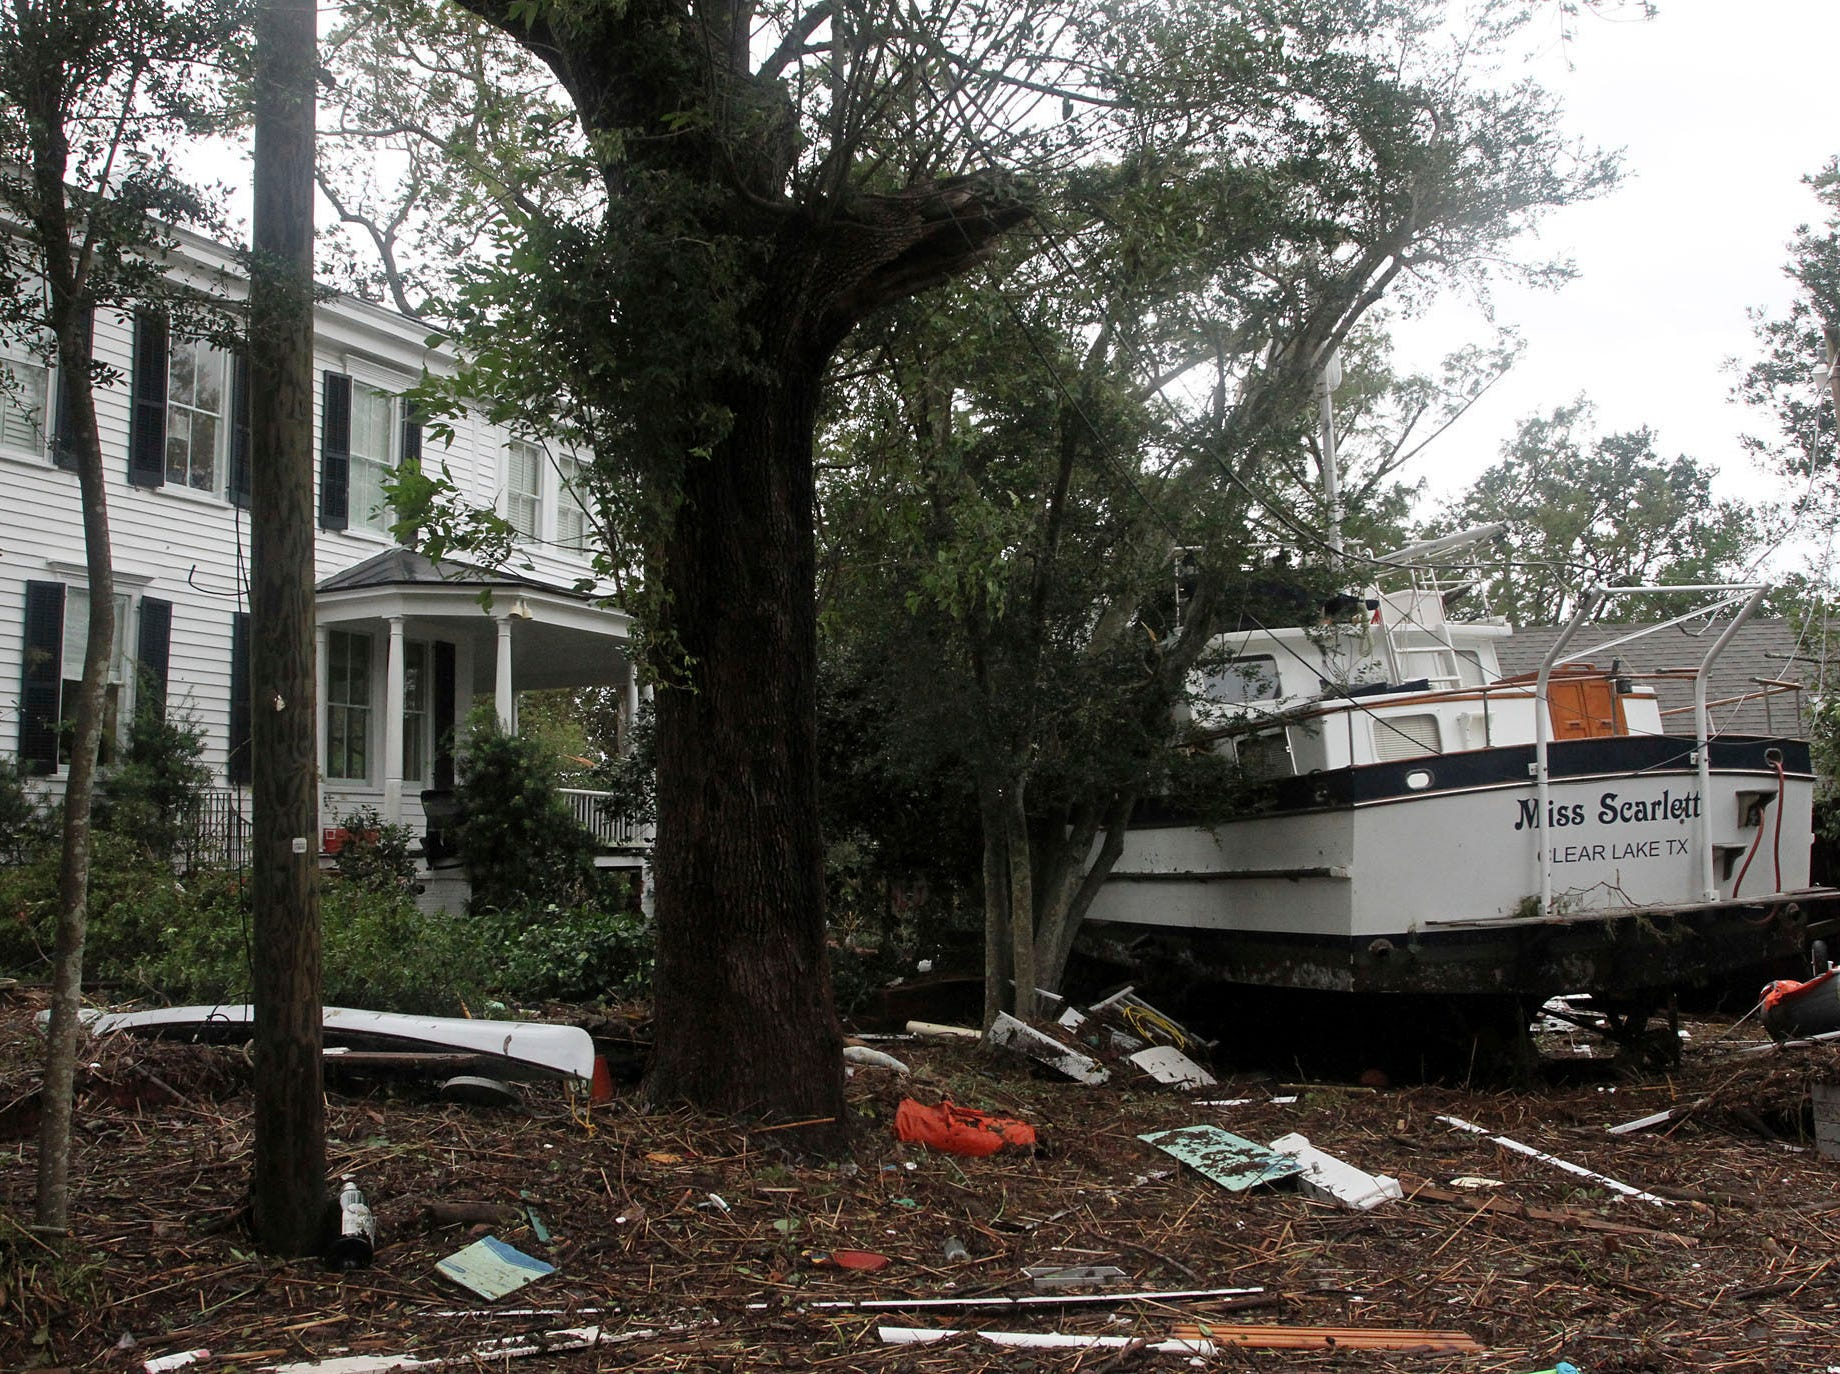 A boat rests in front of a damaged home from tropical storm Florence  in New Bern, N.C., Saturday, Sept.15, 2018.